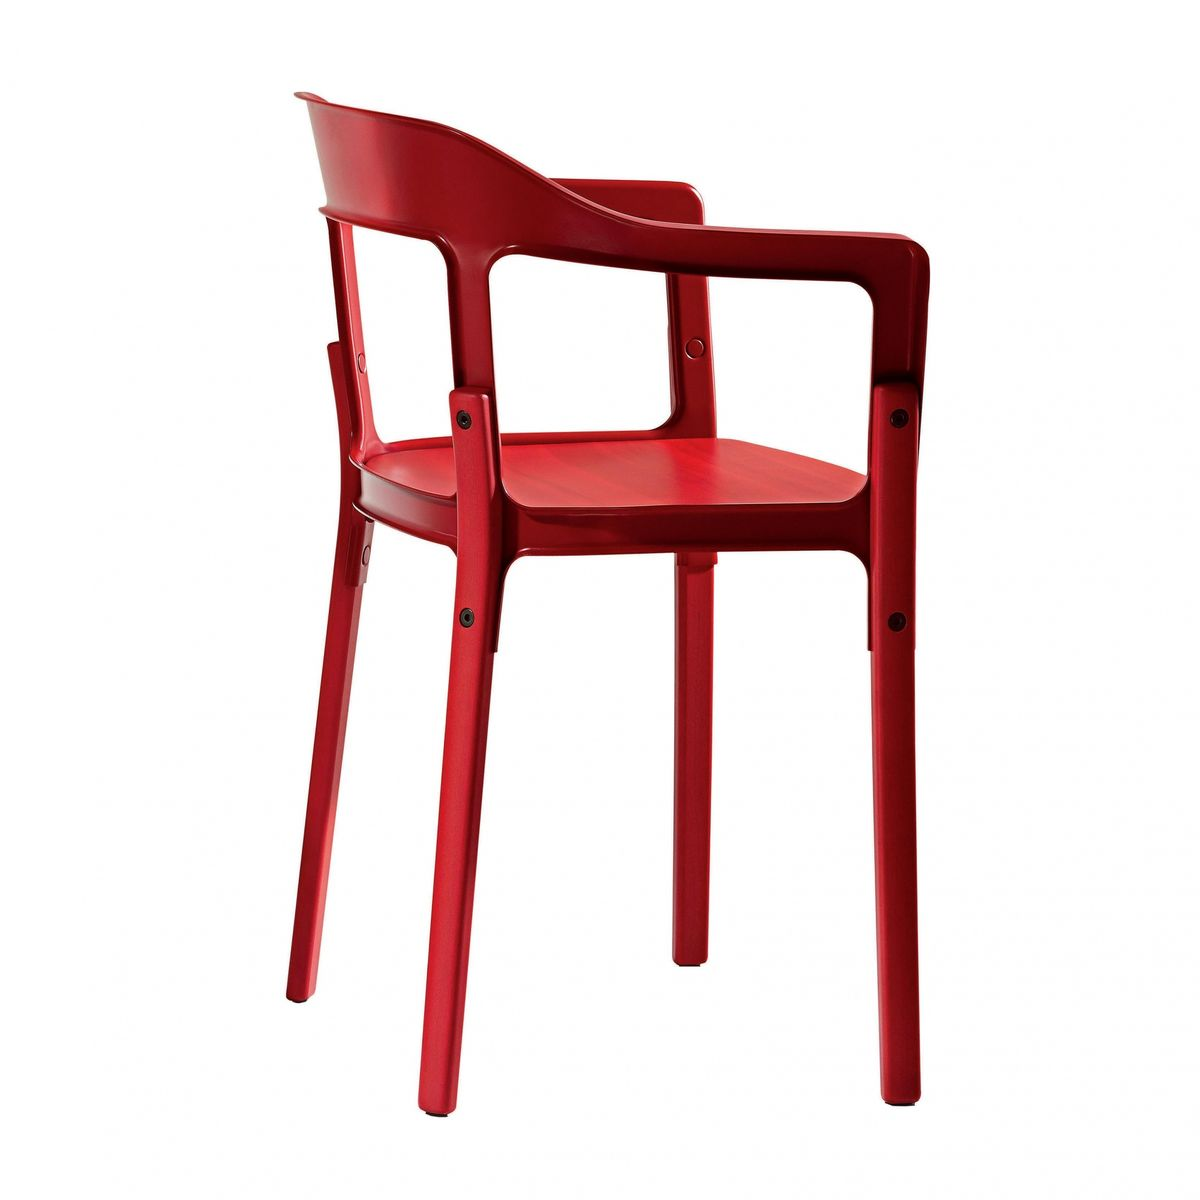 Attractive Magis   Steelwood Chair Armchair   Red/lacquered/with Felt Gliders